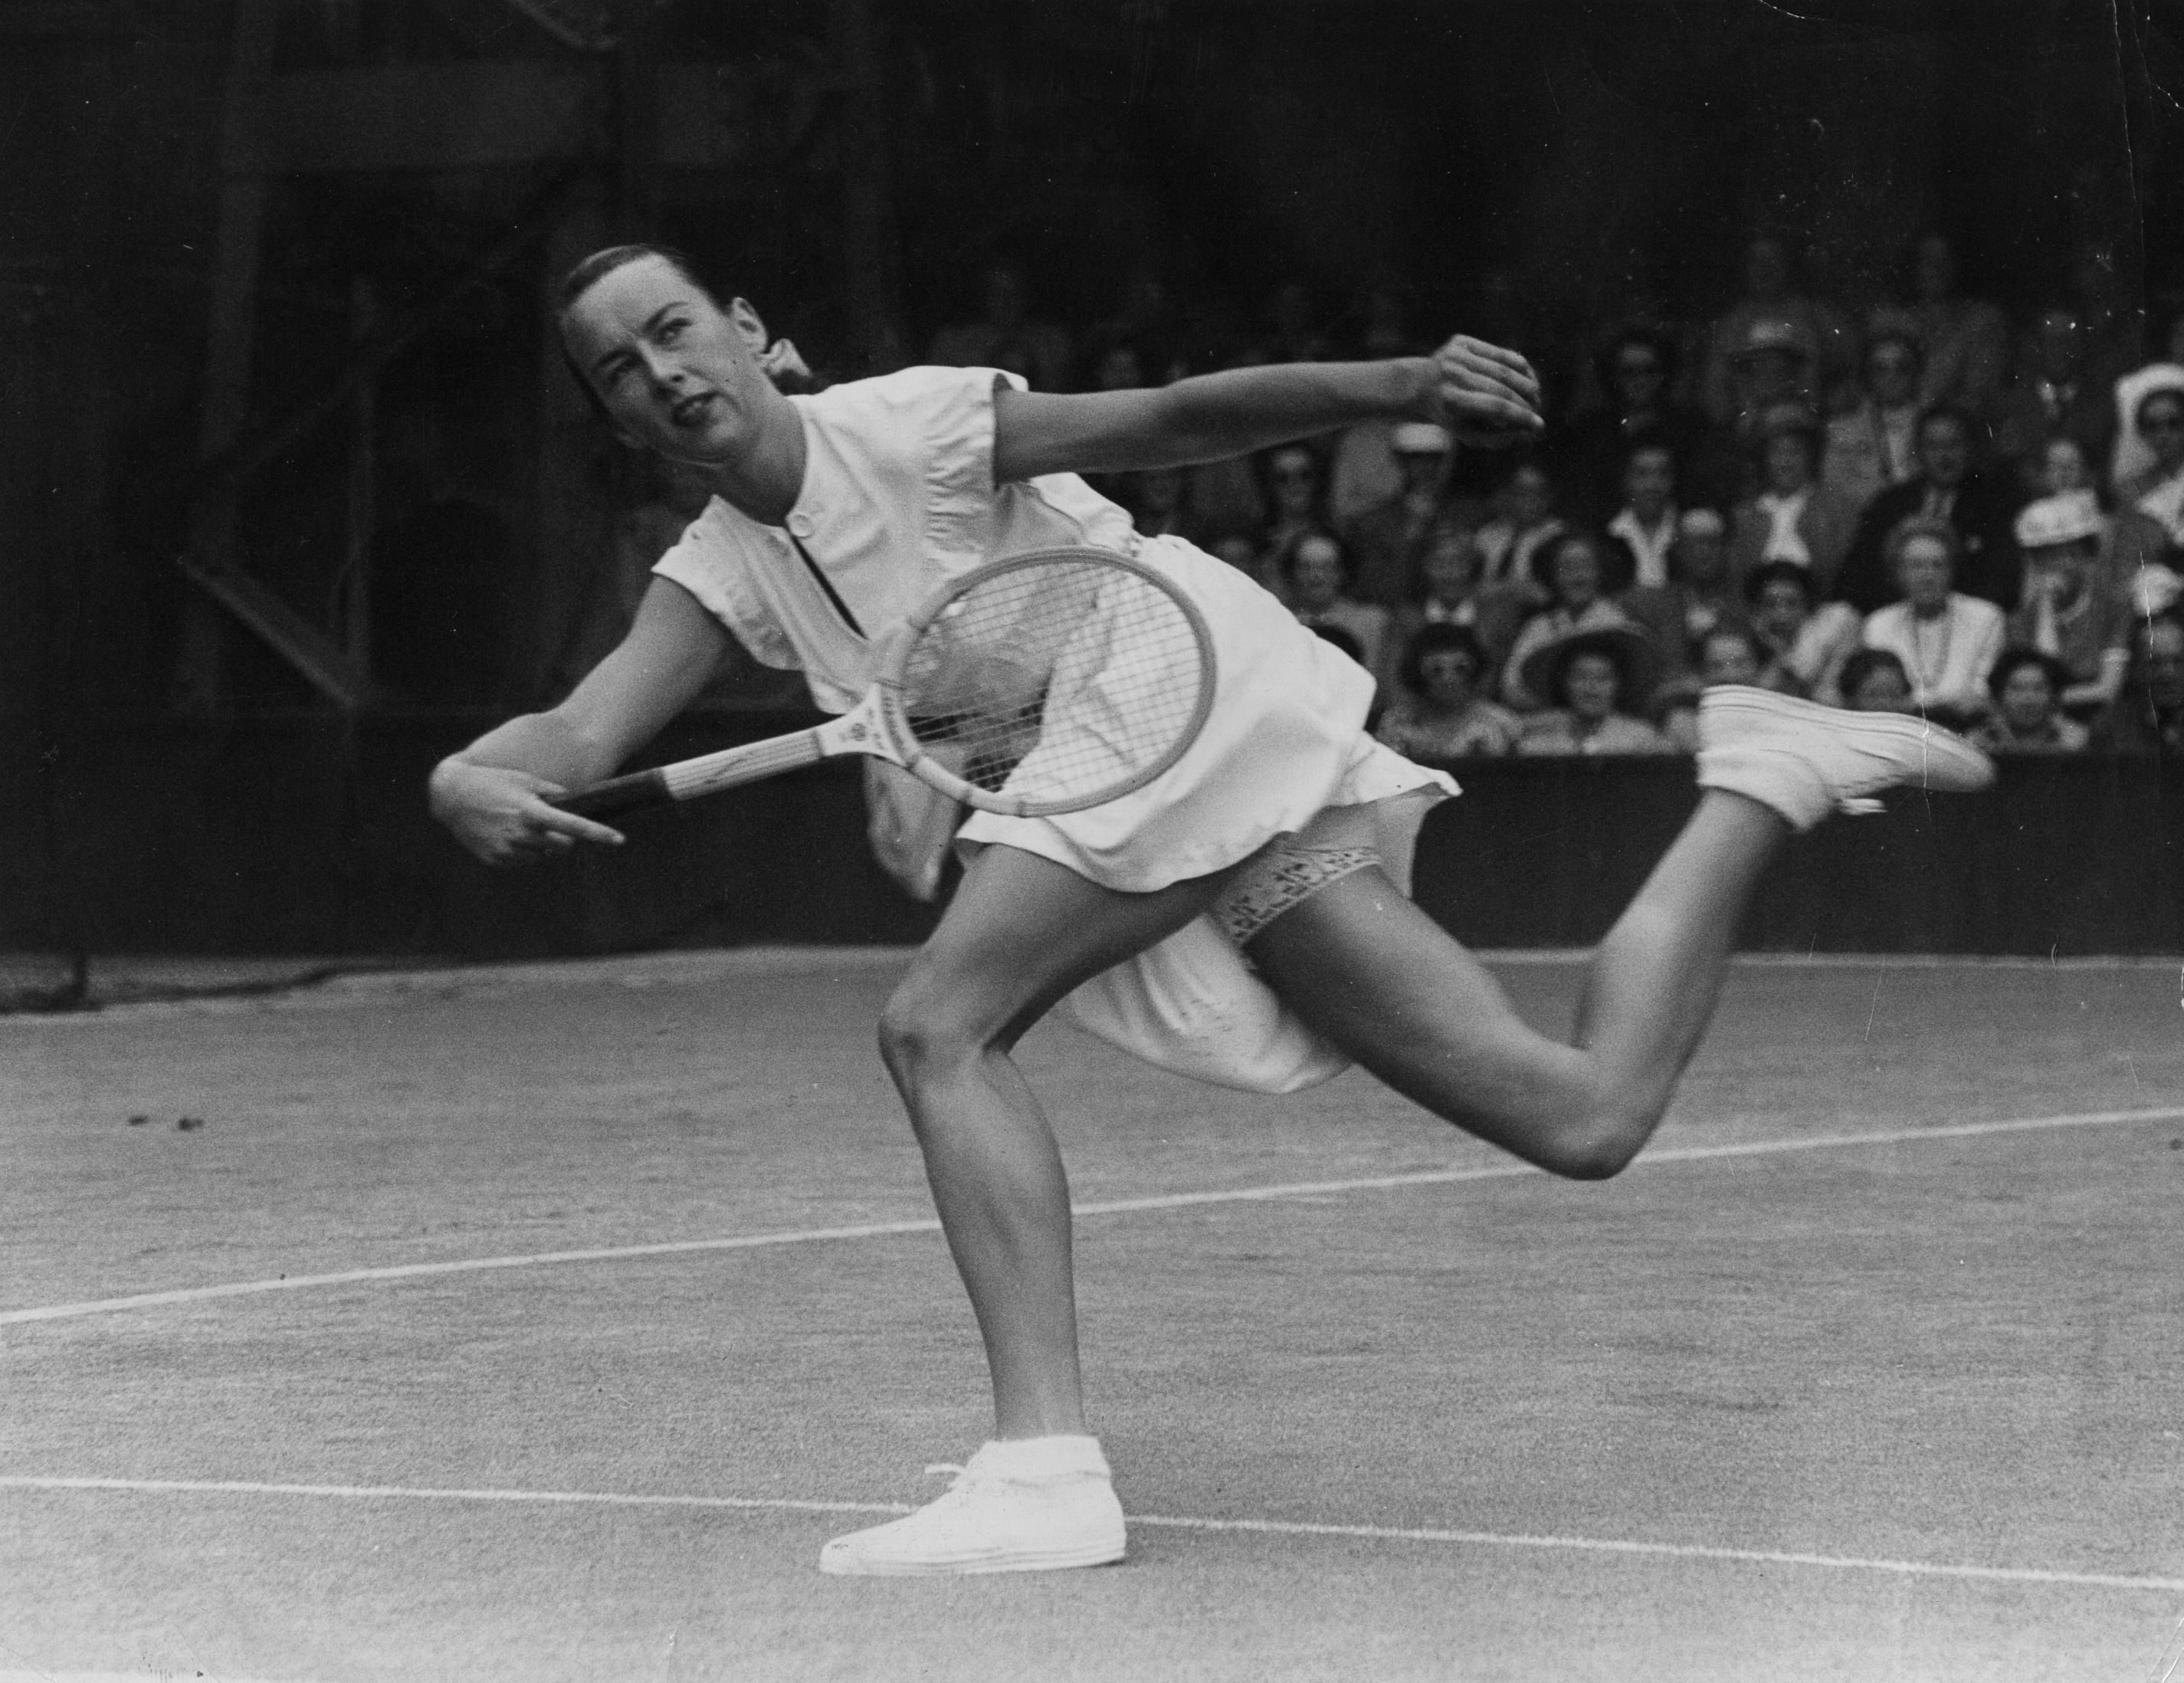 American tennis player Gertrude Moran, or Gorgeous Gussie, in action on her way to beating F M Wilford at Wimbledon on June 22, 1949.